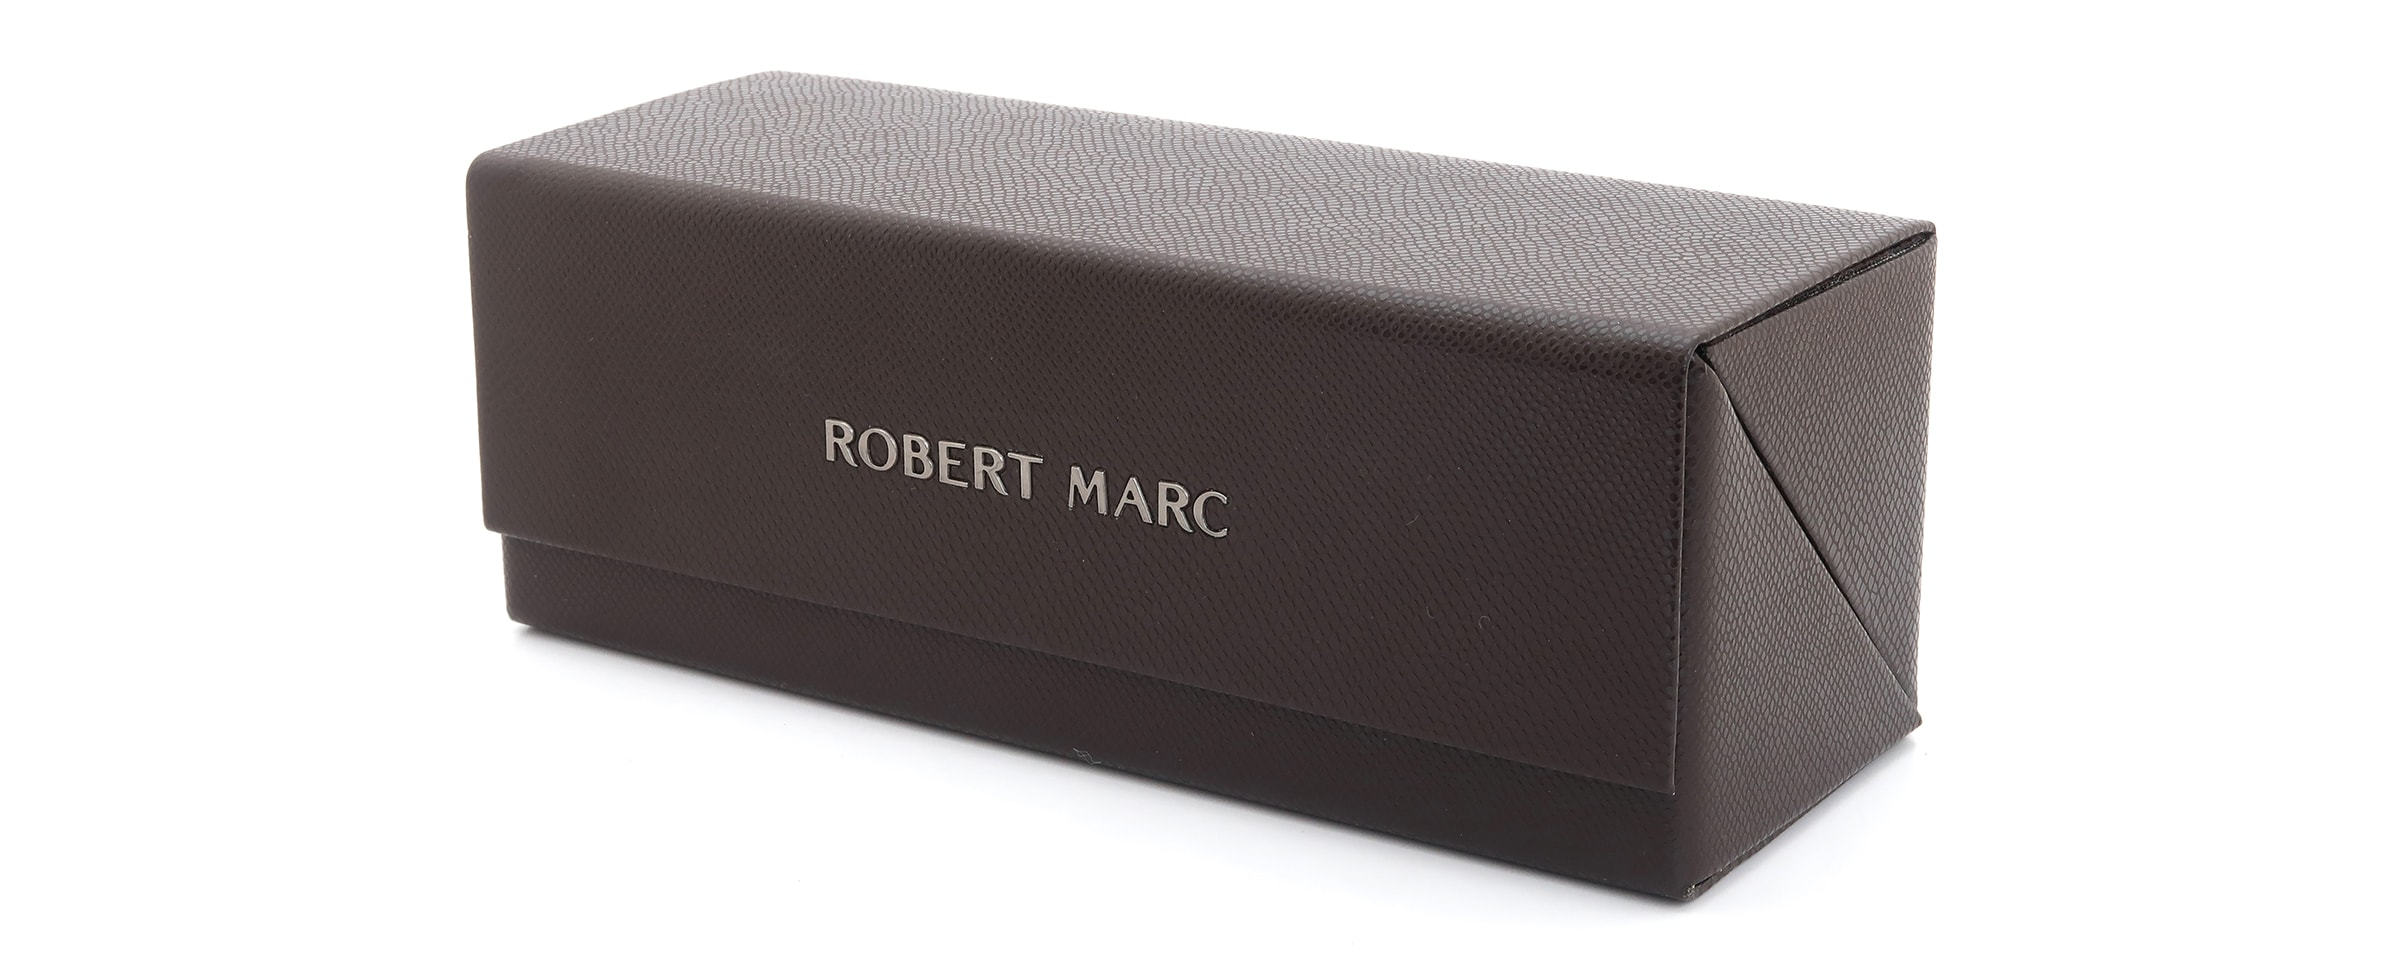 ROBERT MARC 2P-LEATHER-CASE